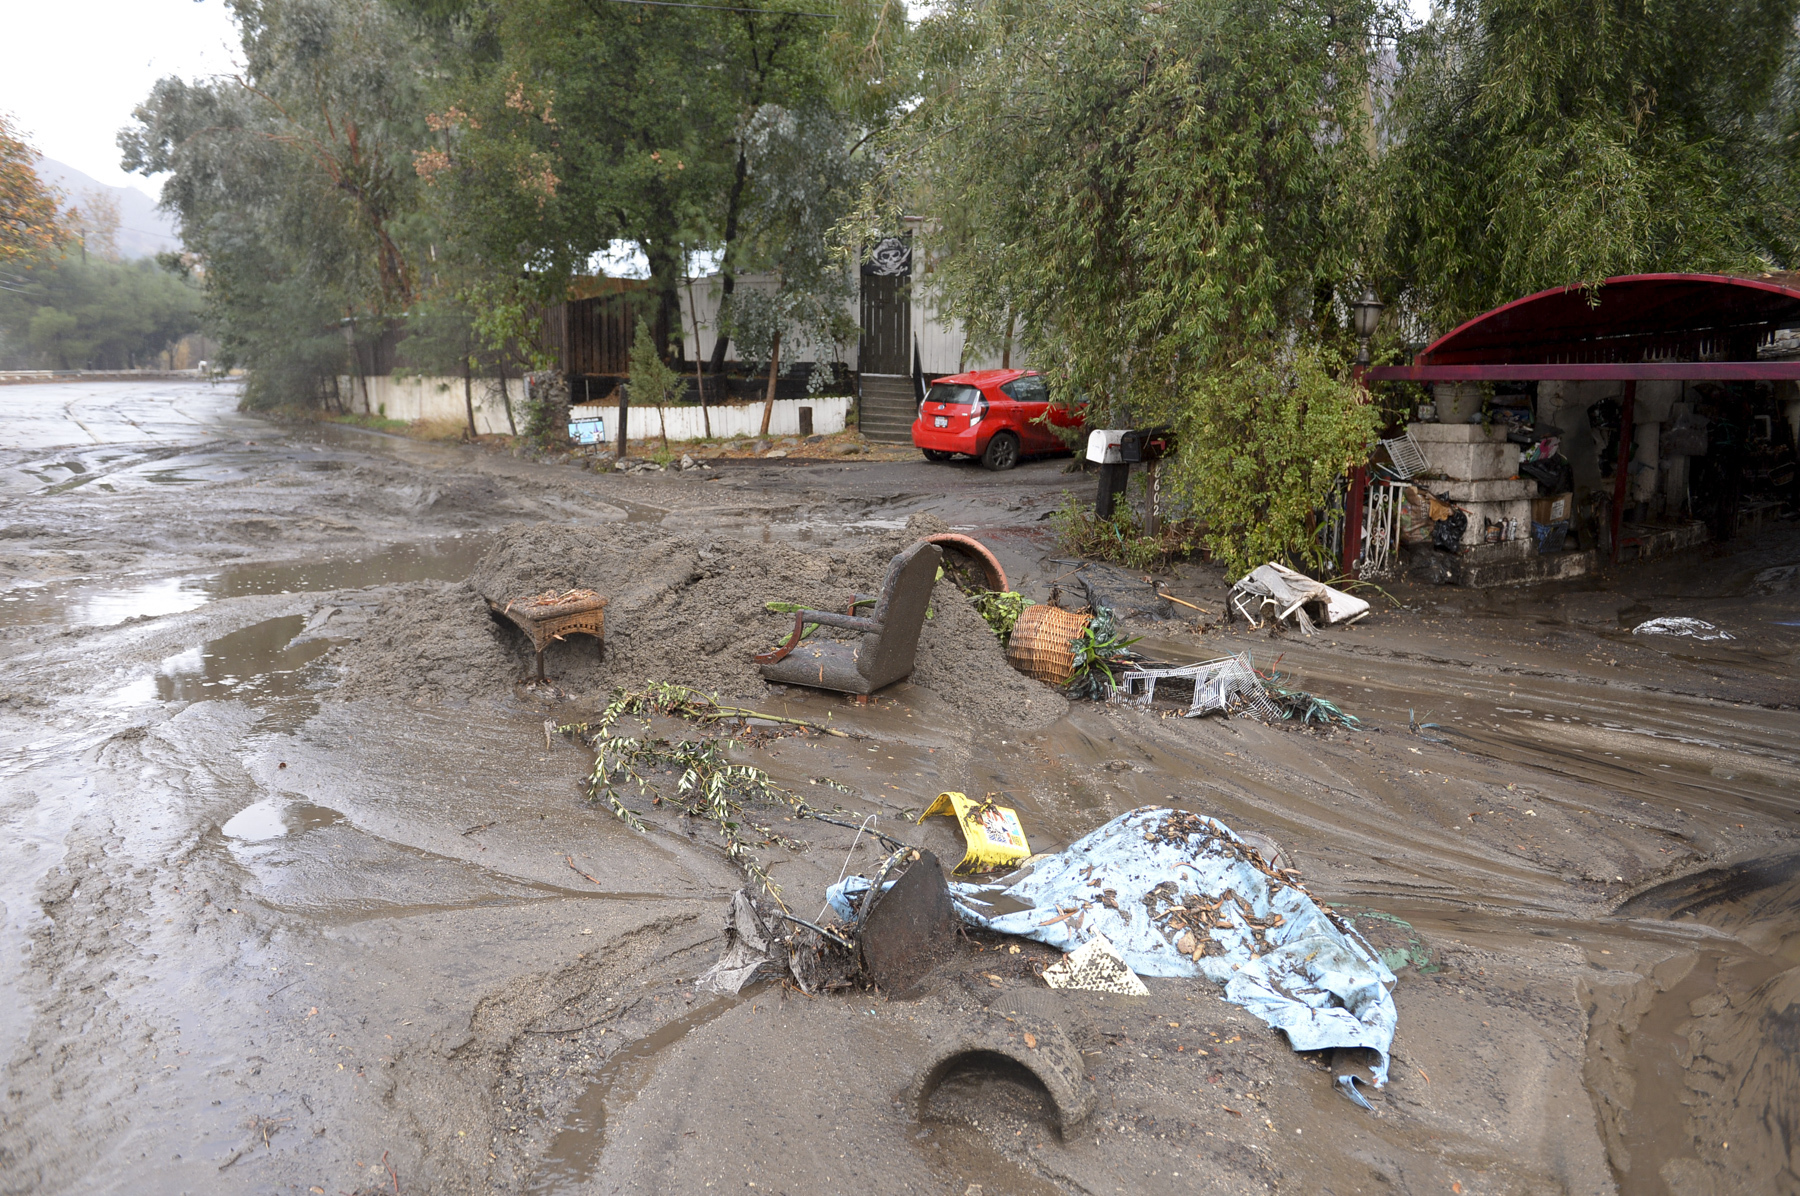 Mud washes away personal belongings along La Tuna Canyon road in the Sun Valley neighborhood of Los Angeles on Tuesday, Jan. 9, 2018. Homes were swept from their foundations  as heavy rain sent mud and boulders sliding down hills stripped of vegetation by Southern California's recent wildfires.   (David Crane/Los Angeles Daily News via AP)